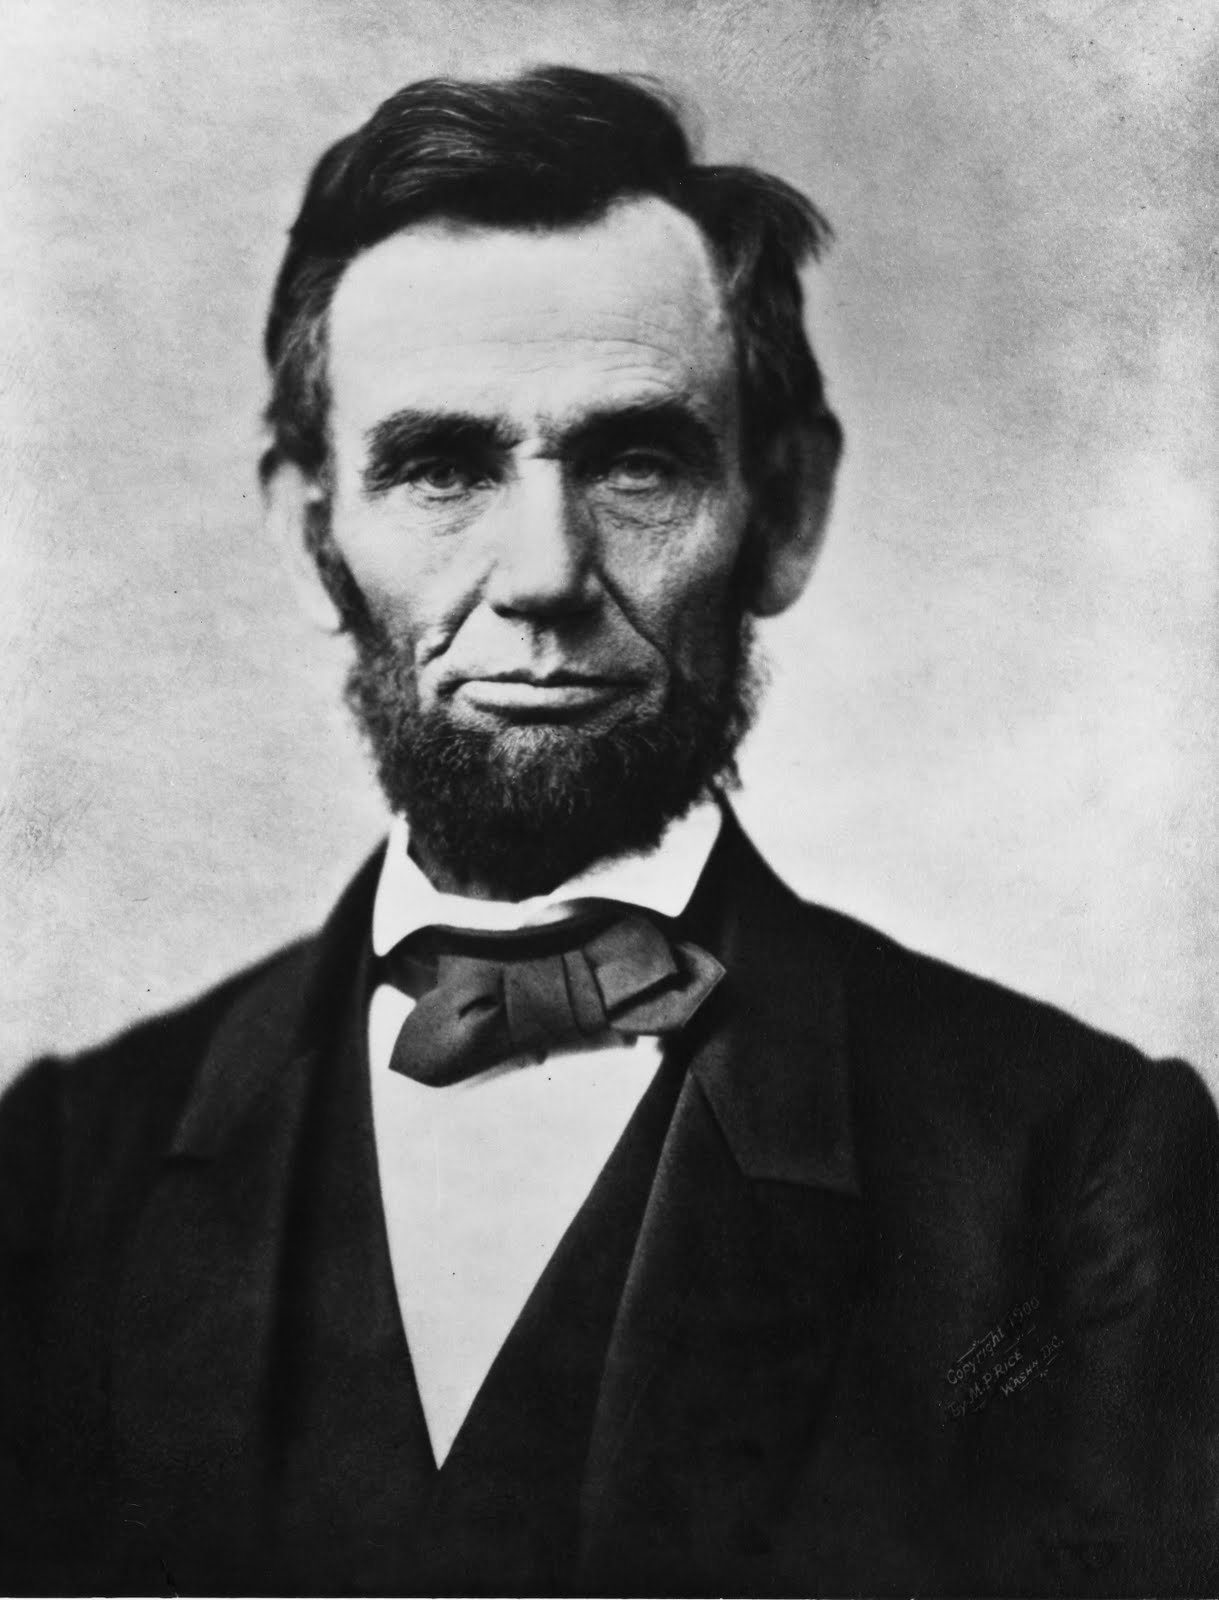 Lobojo s den the non bilateral abraham lincoln